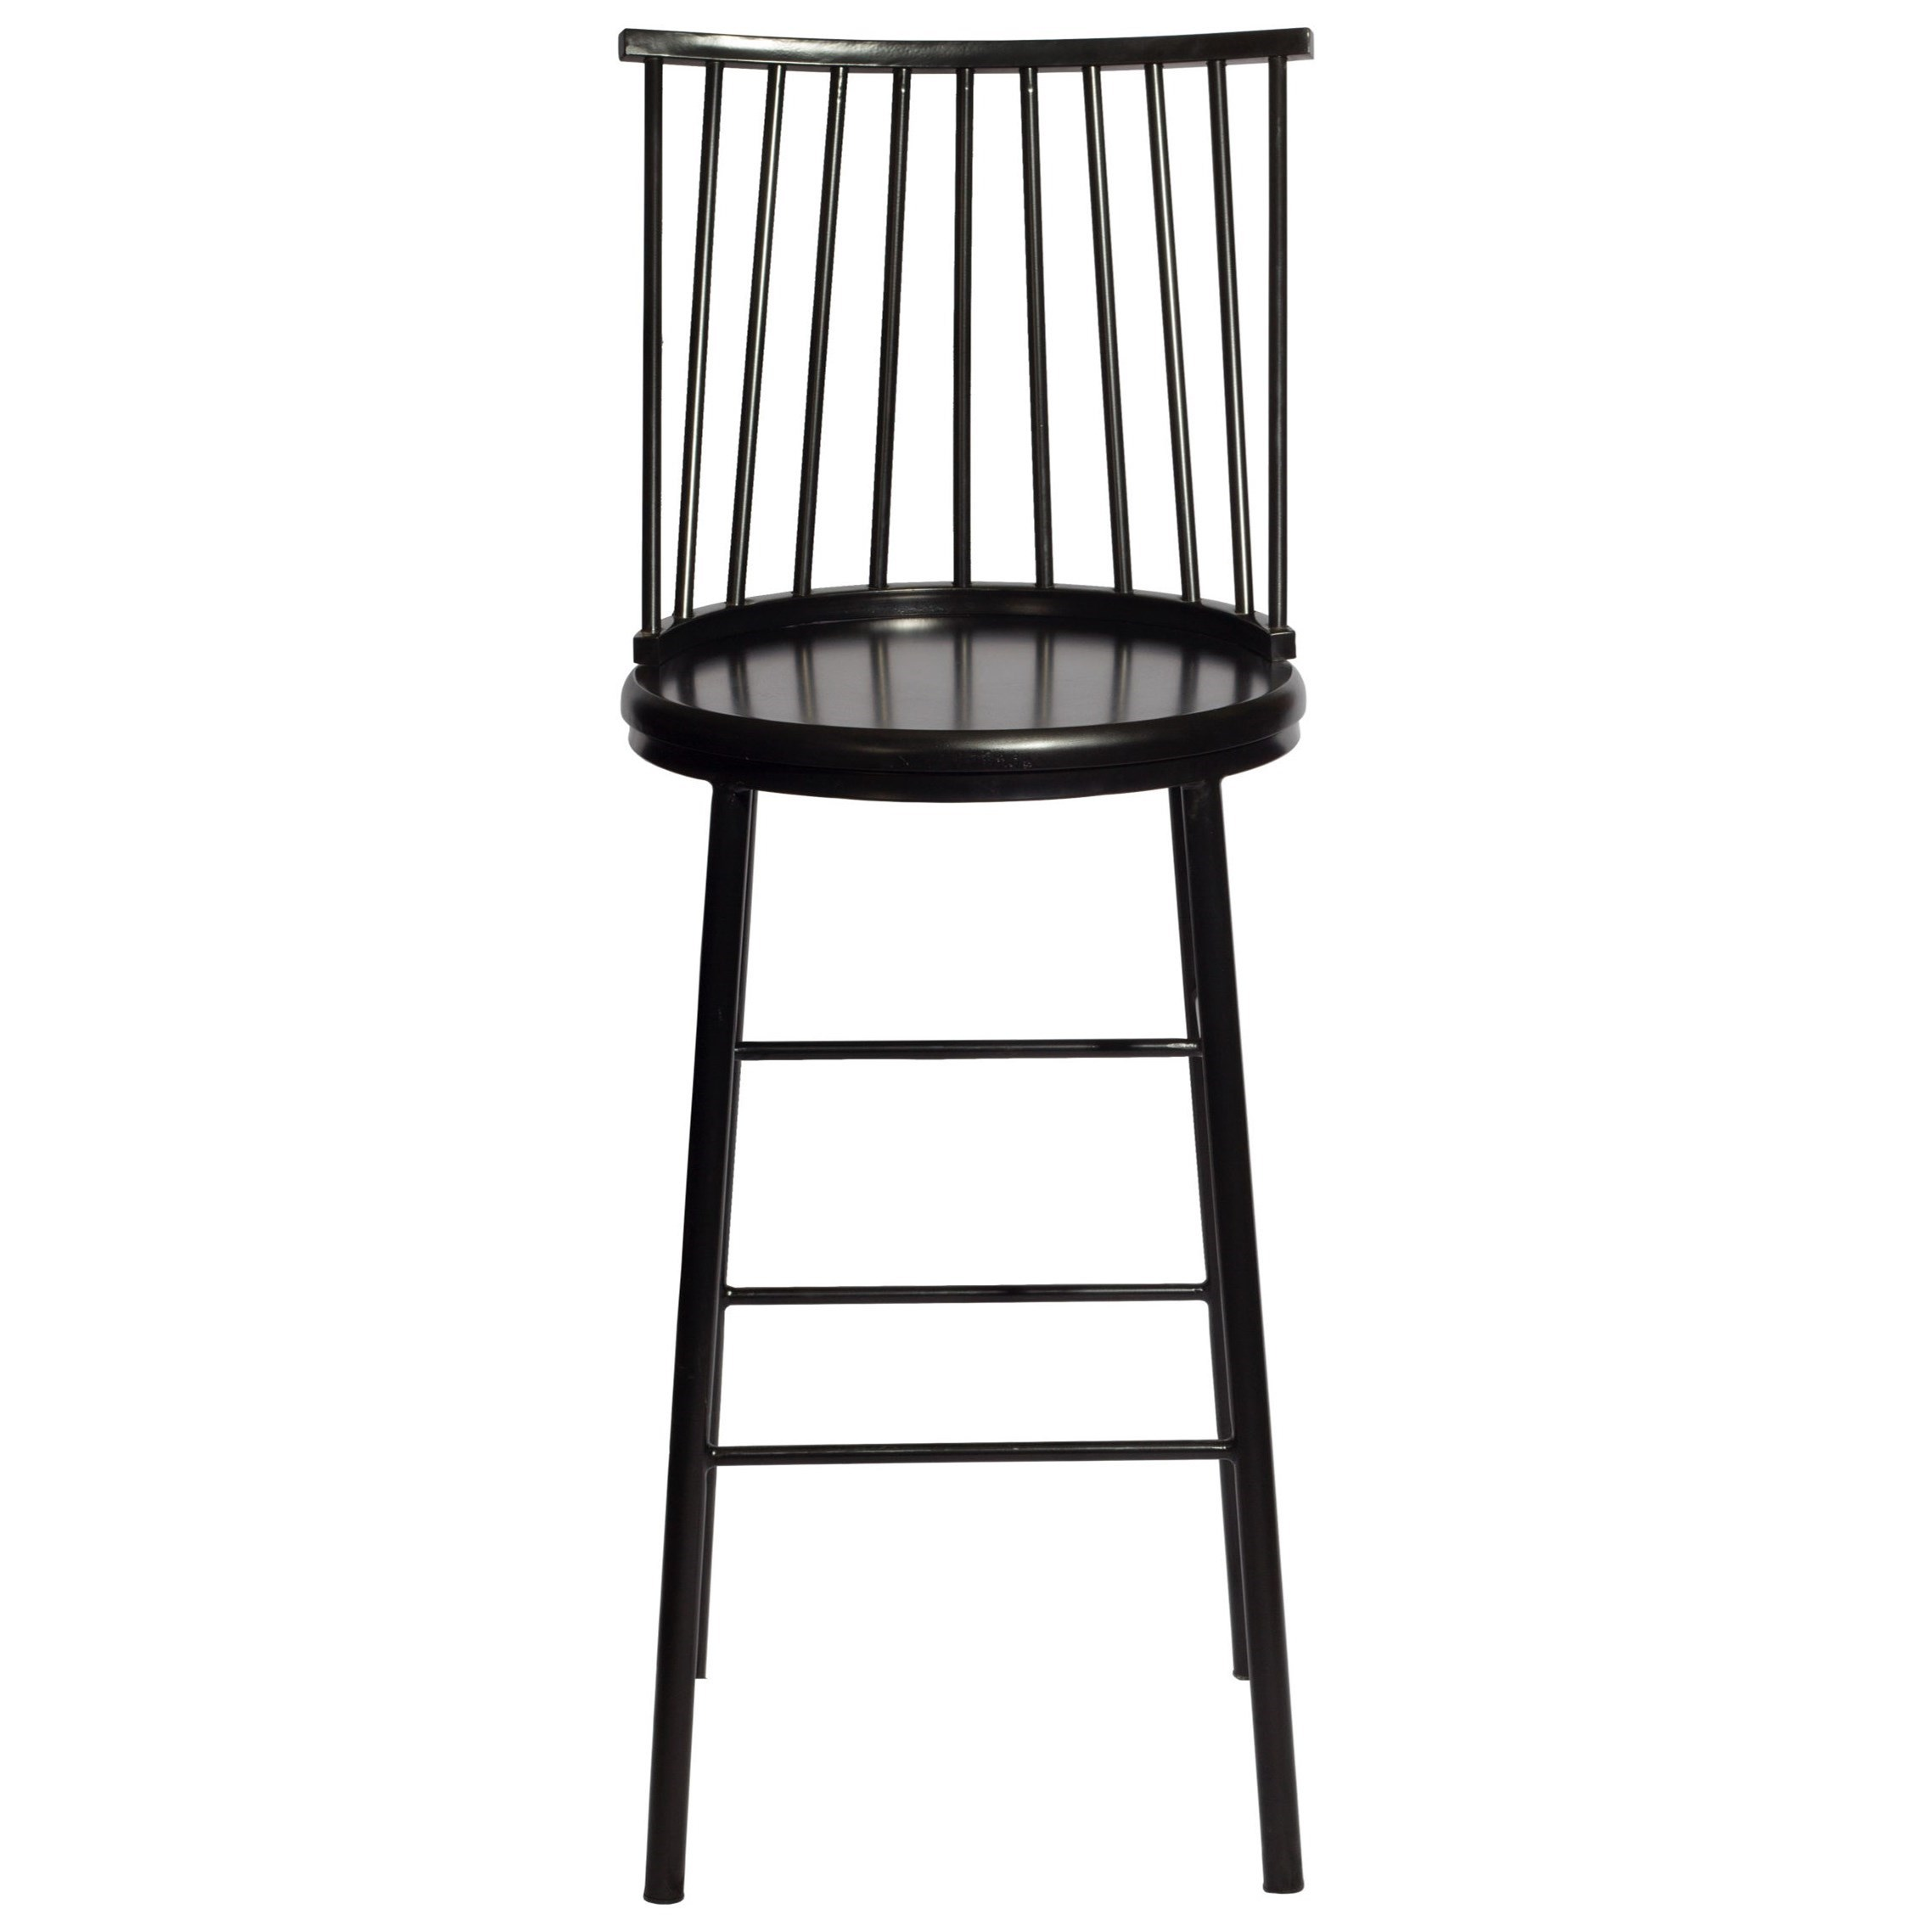 Frida Bar Chair by Steve Silver at Northeast Factory Direct